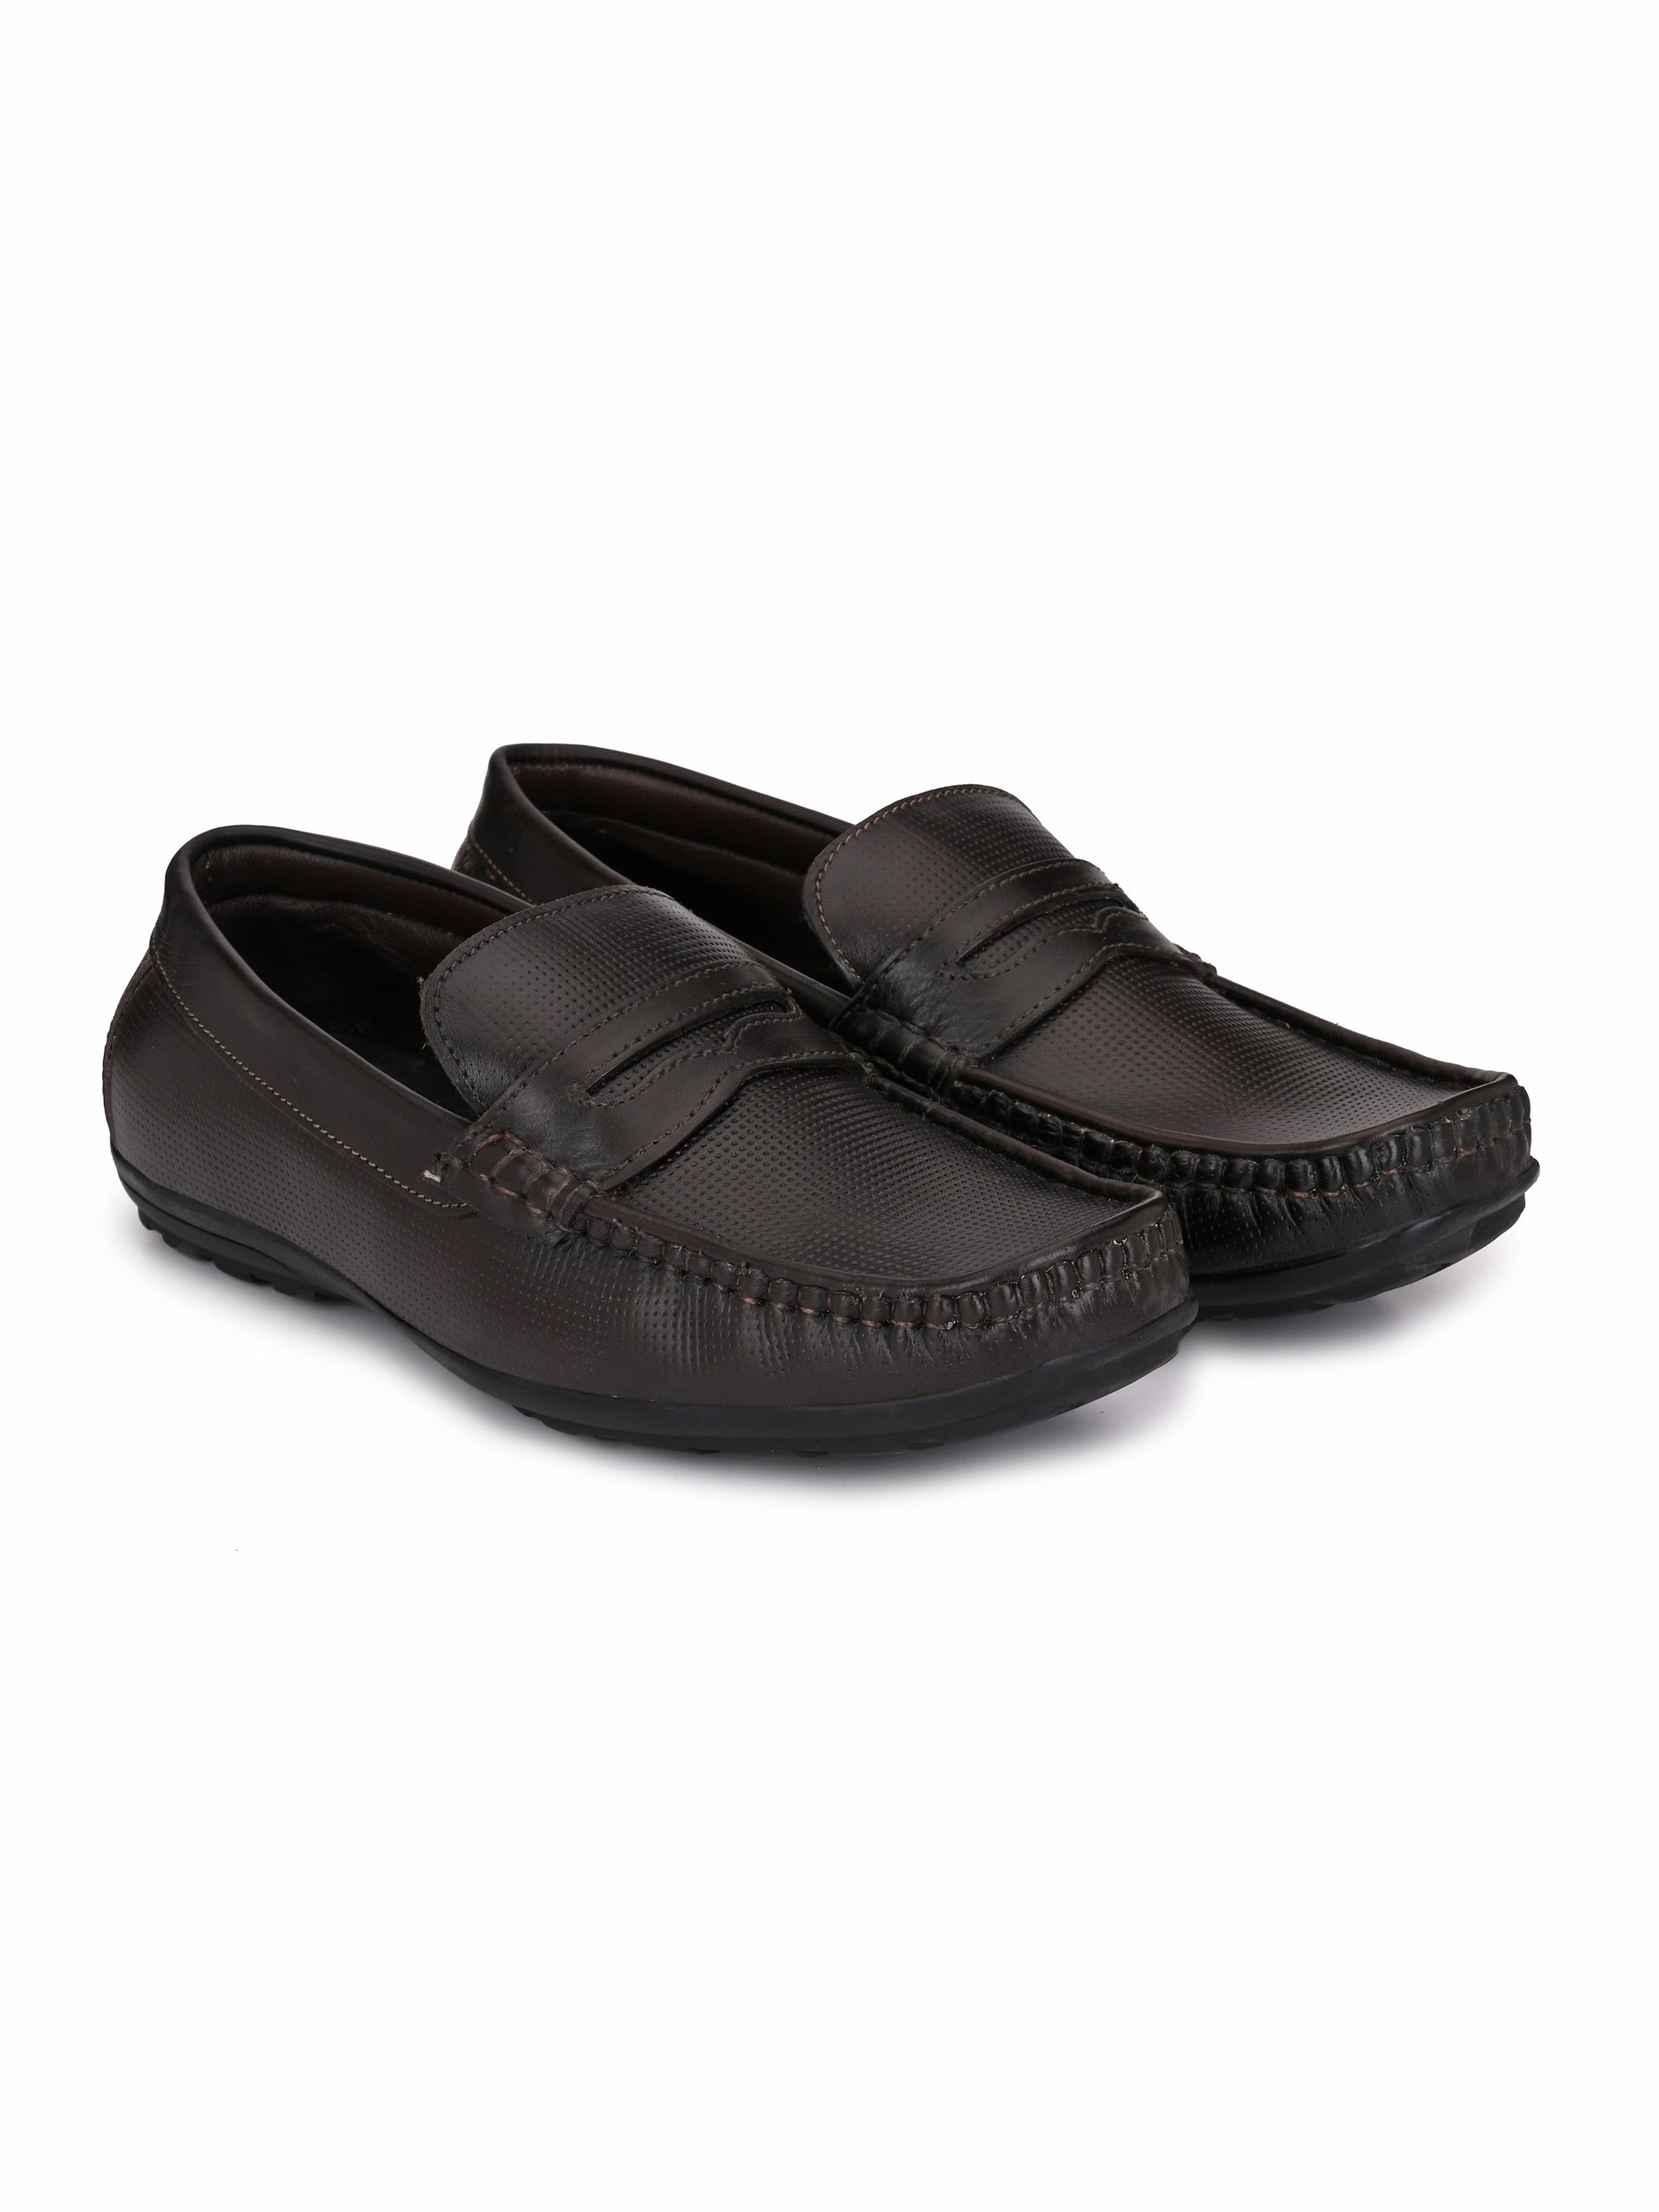 Brown Gingham Leather Loafers - shoegaro